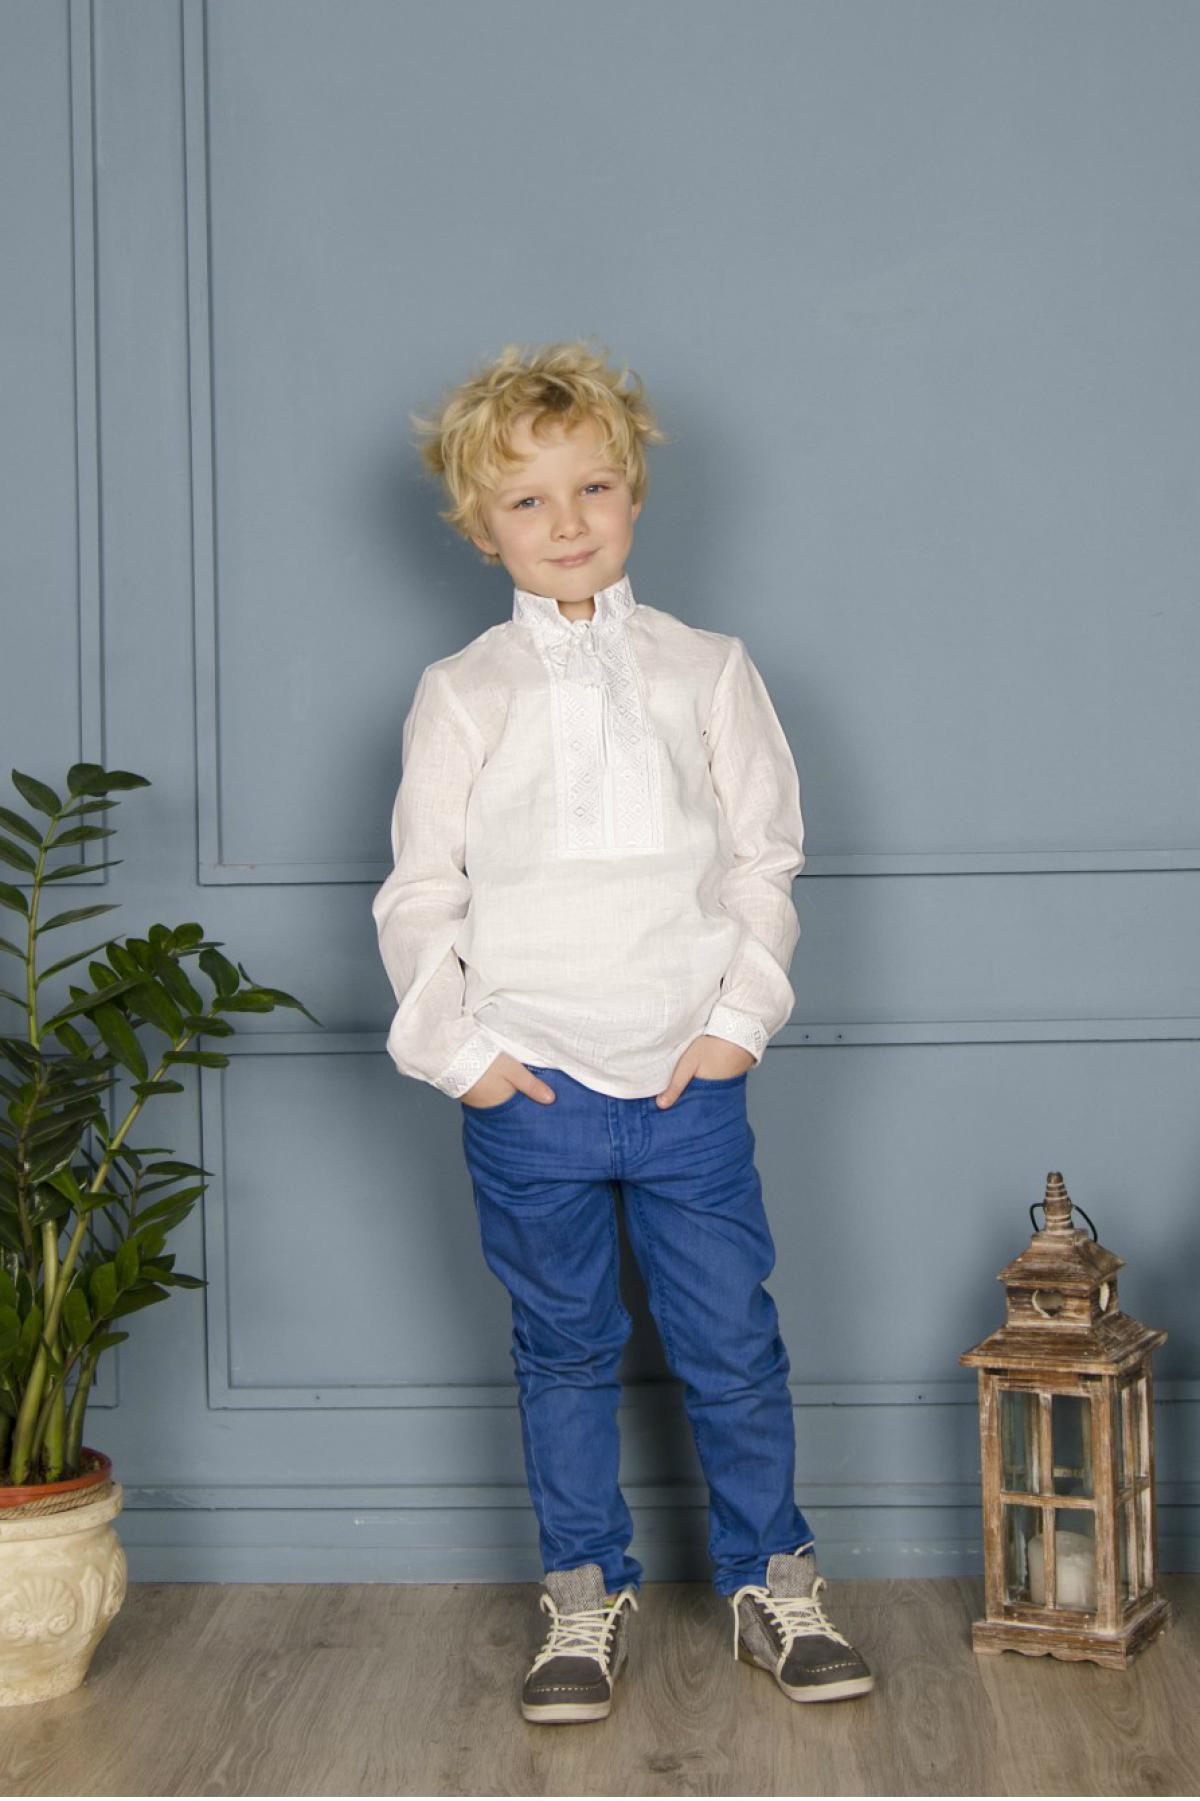 White embroidered shirt for the boy with white embroidery